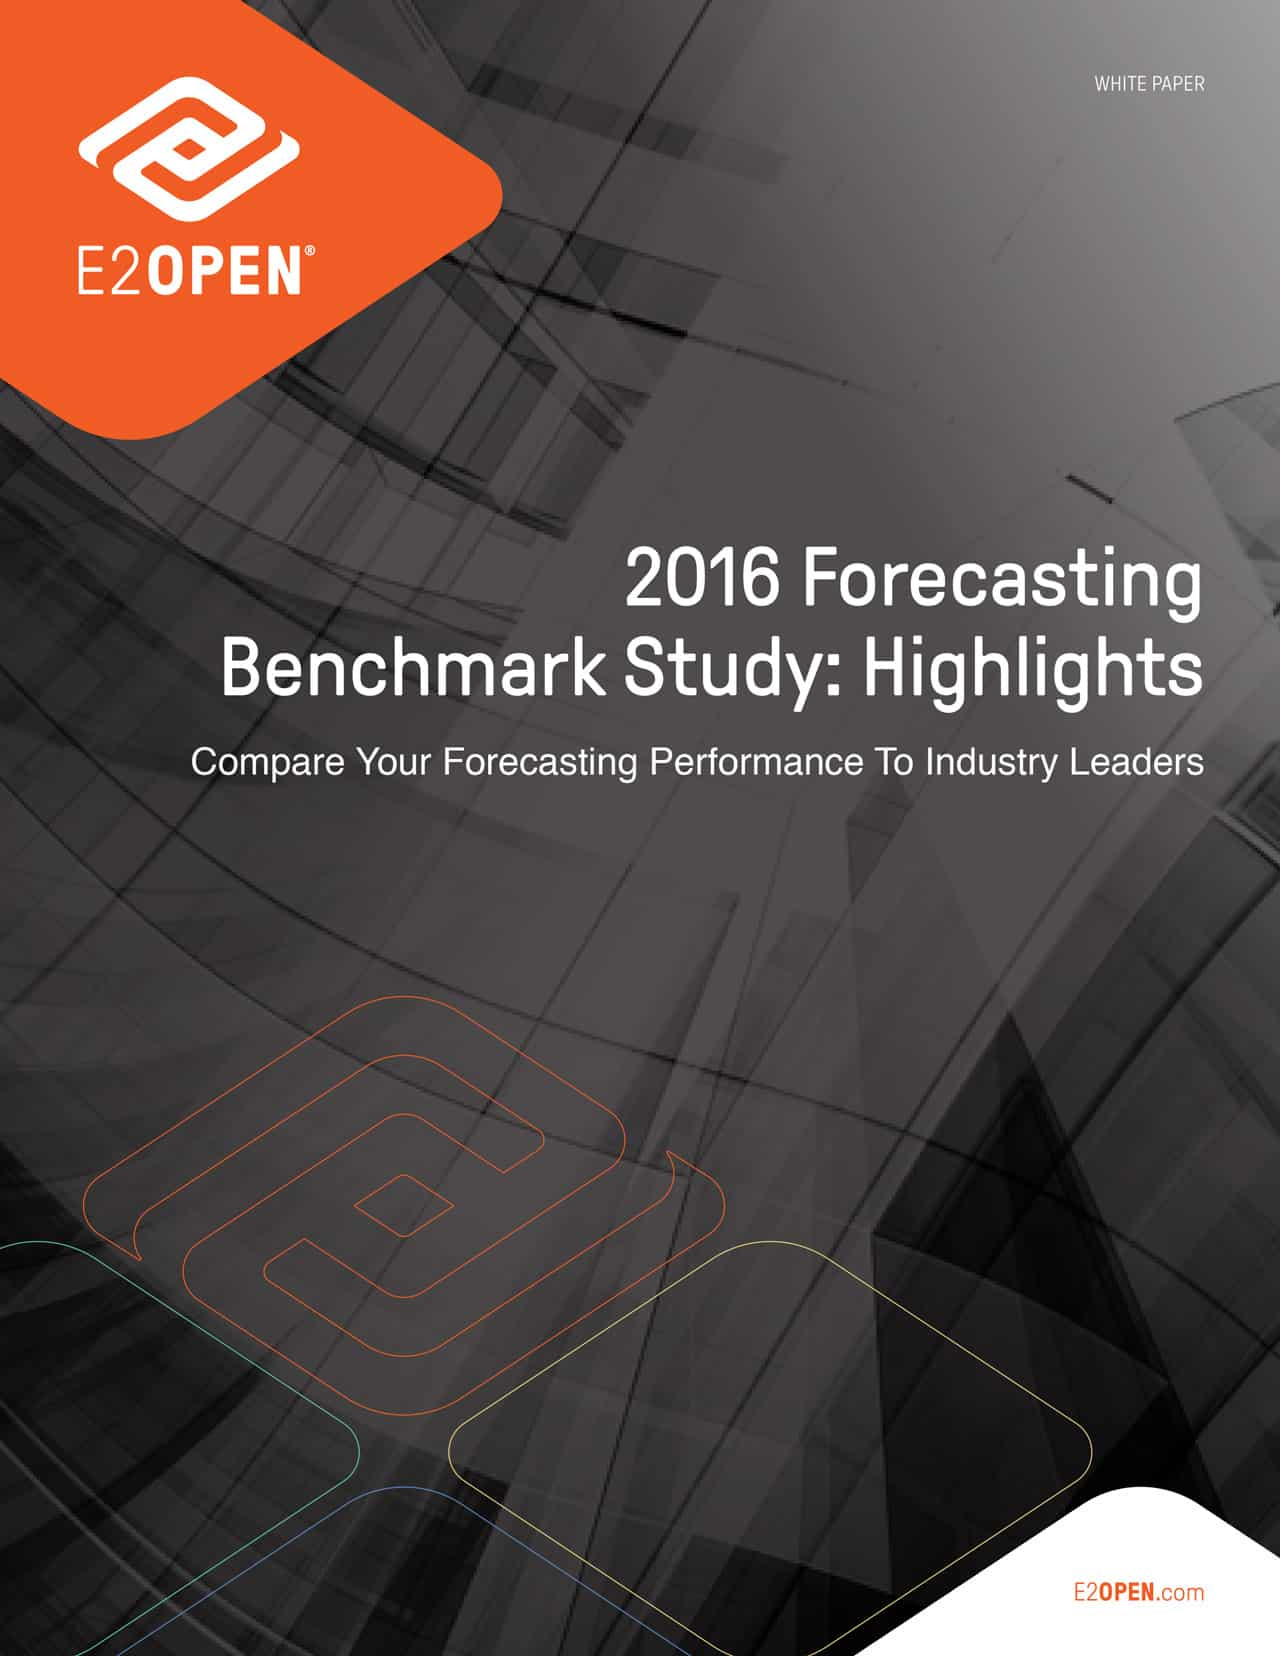 White paper - 2016 Forecasting Benchmark Study: Highlights